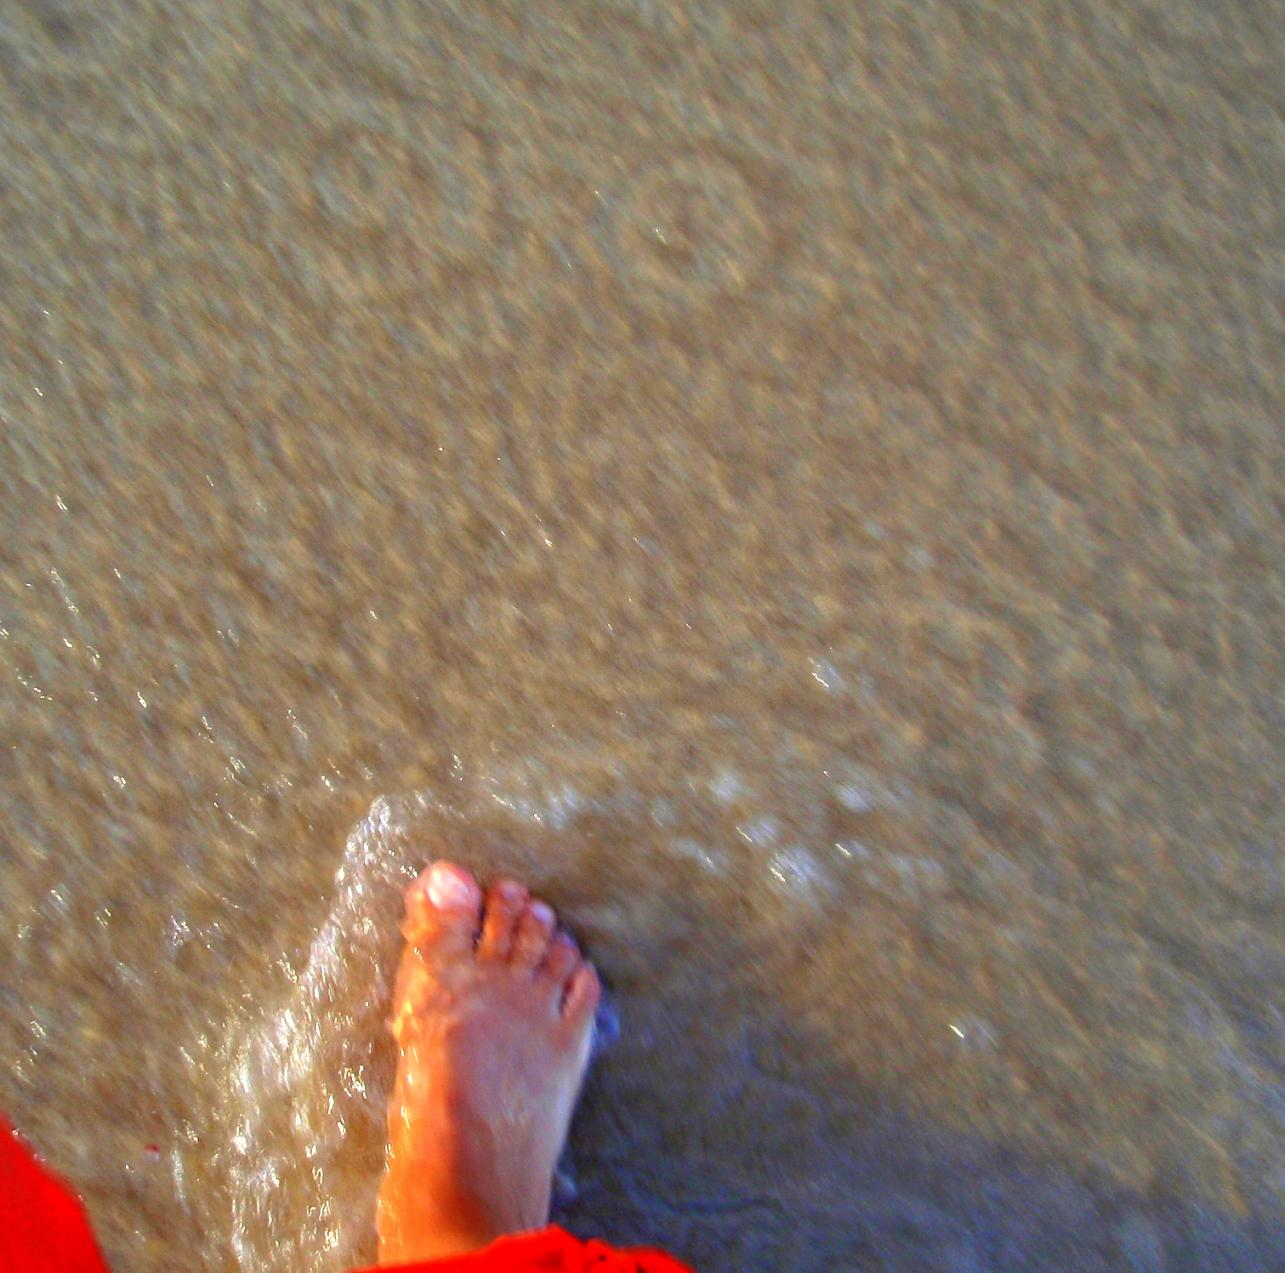 Foot in water